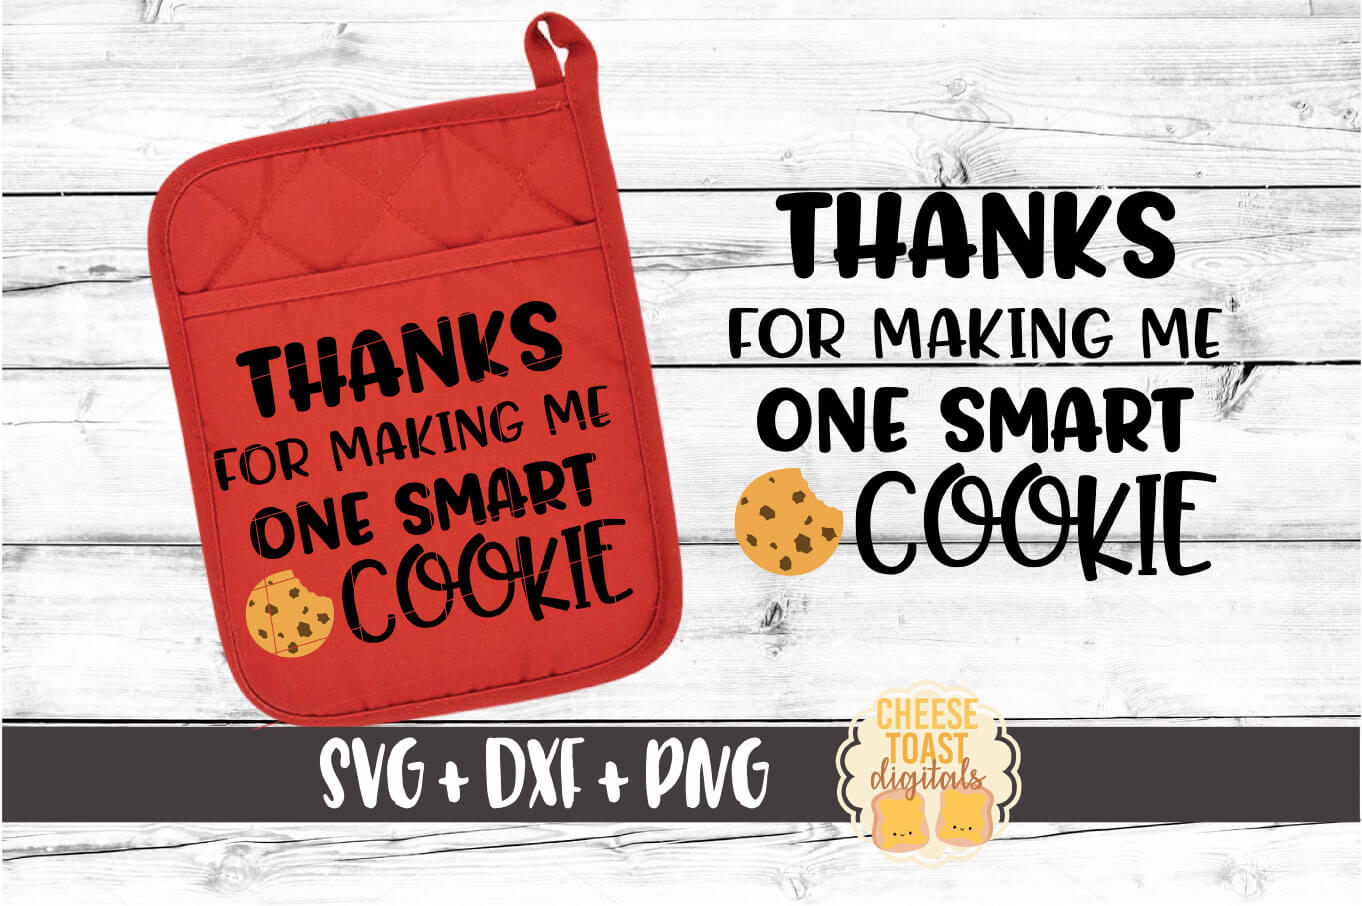 Thanks For Making Me One Smart Cookie - Pot Holder Design